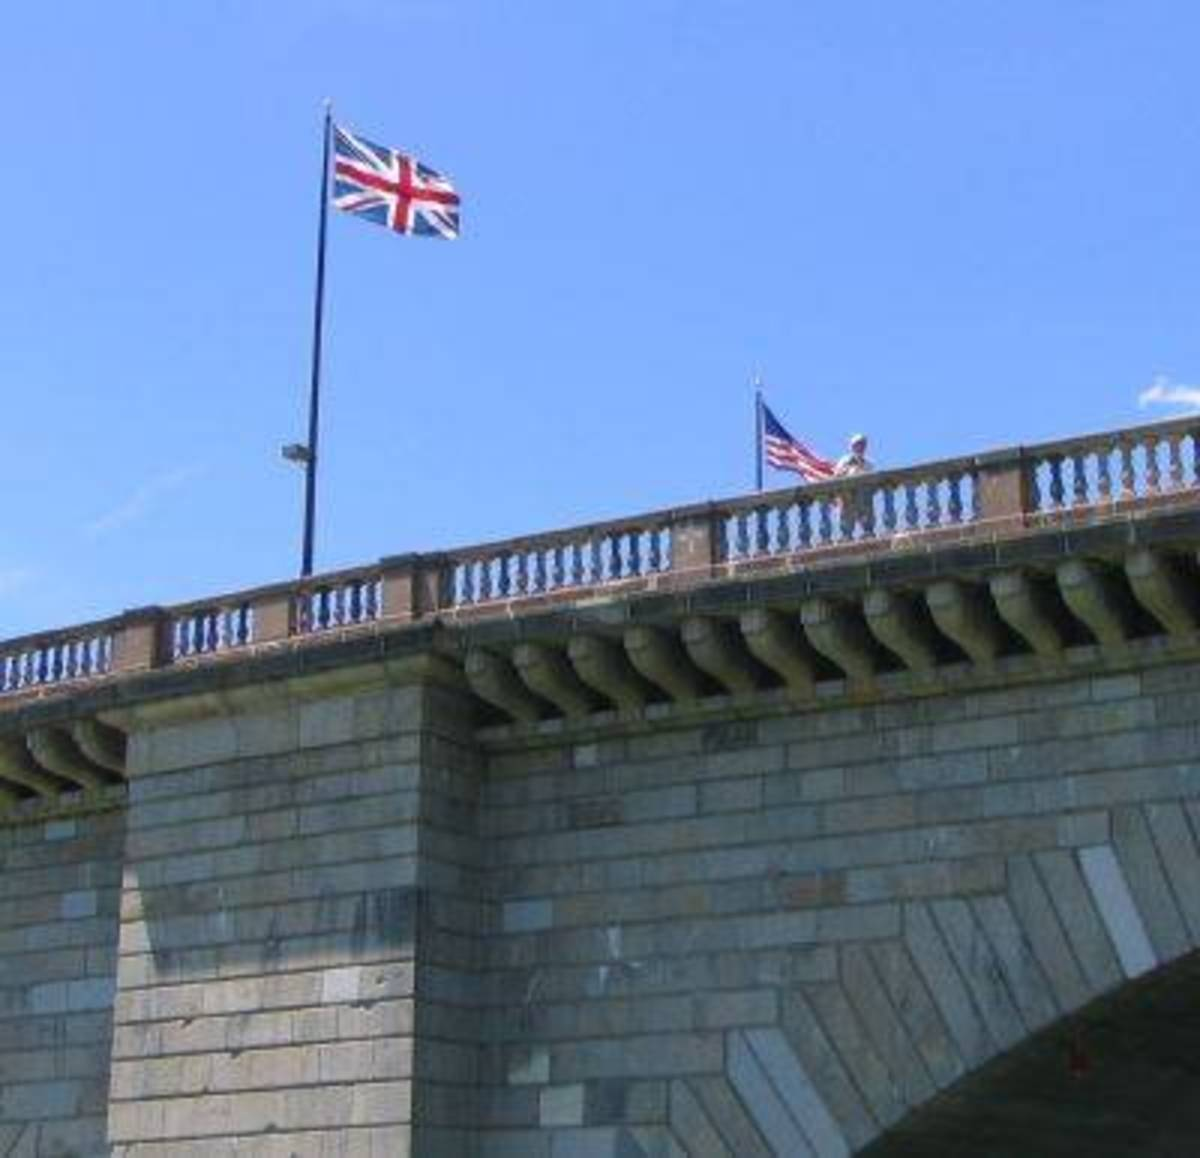 London Bridge located in Lake Havasu, Arizona (yes, it is THE London Bridge from the song!)